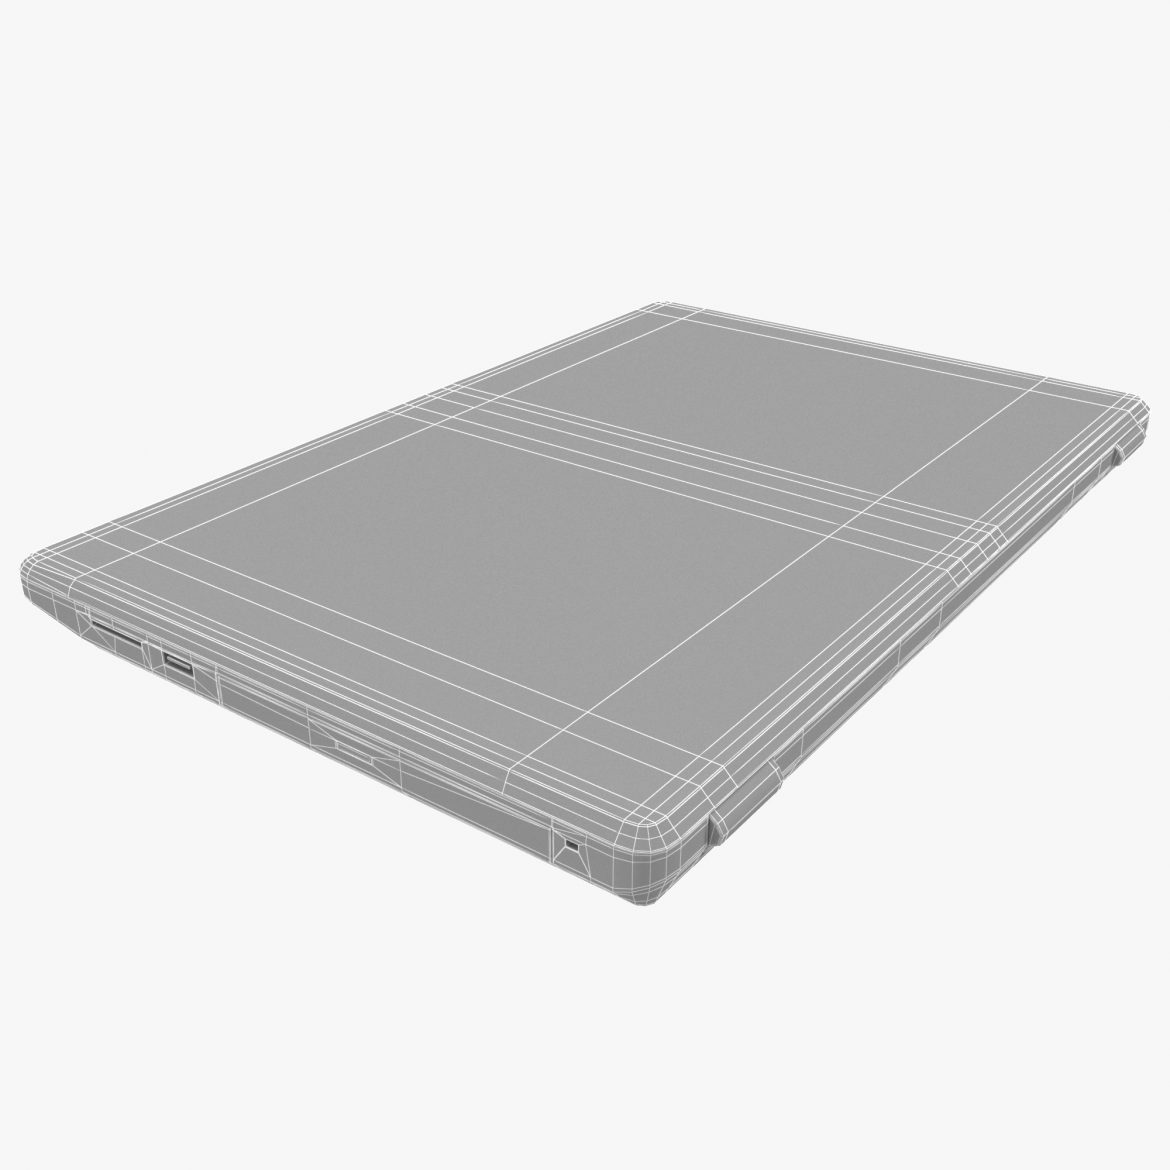 generic notebook laptop 3d model max fbx ma mb obj 298275